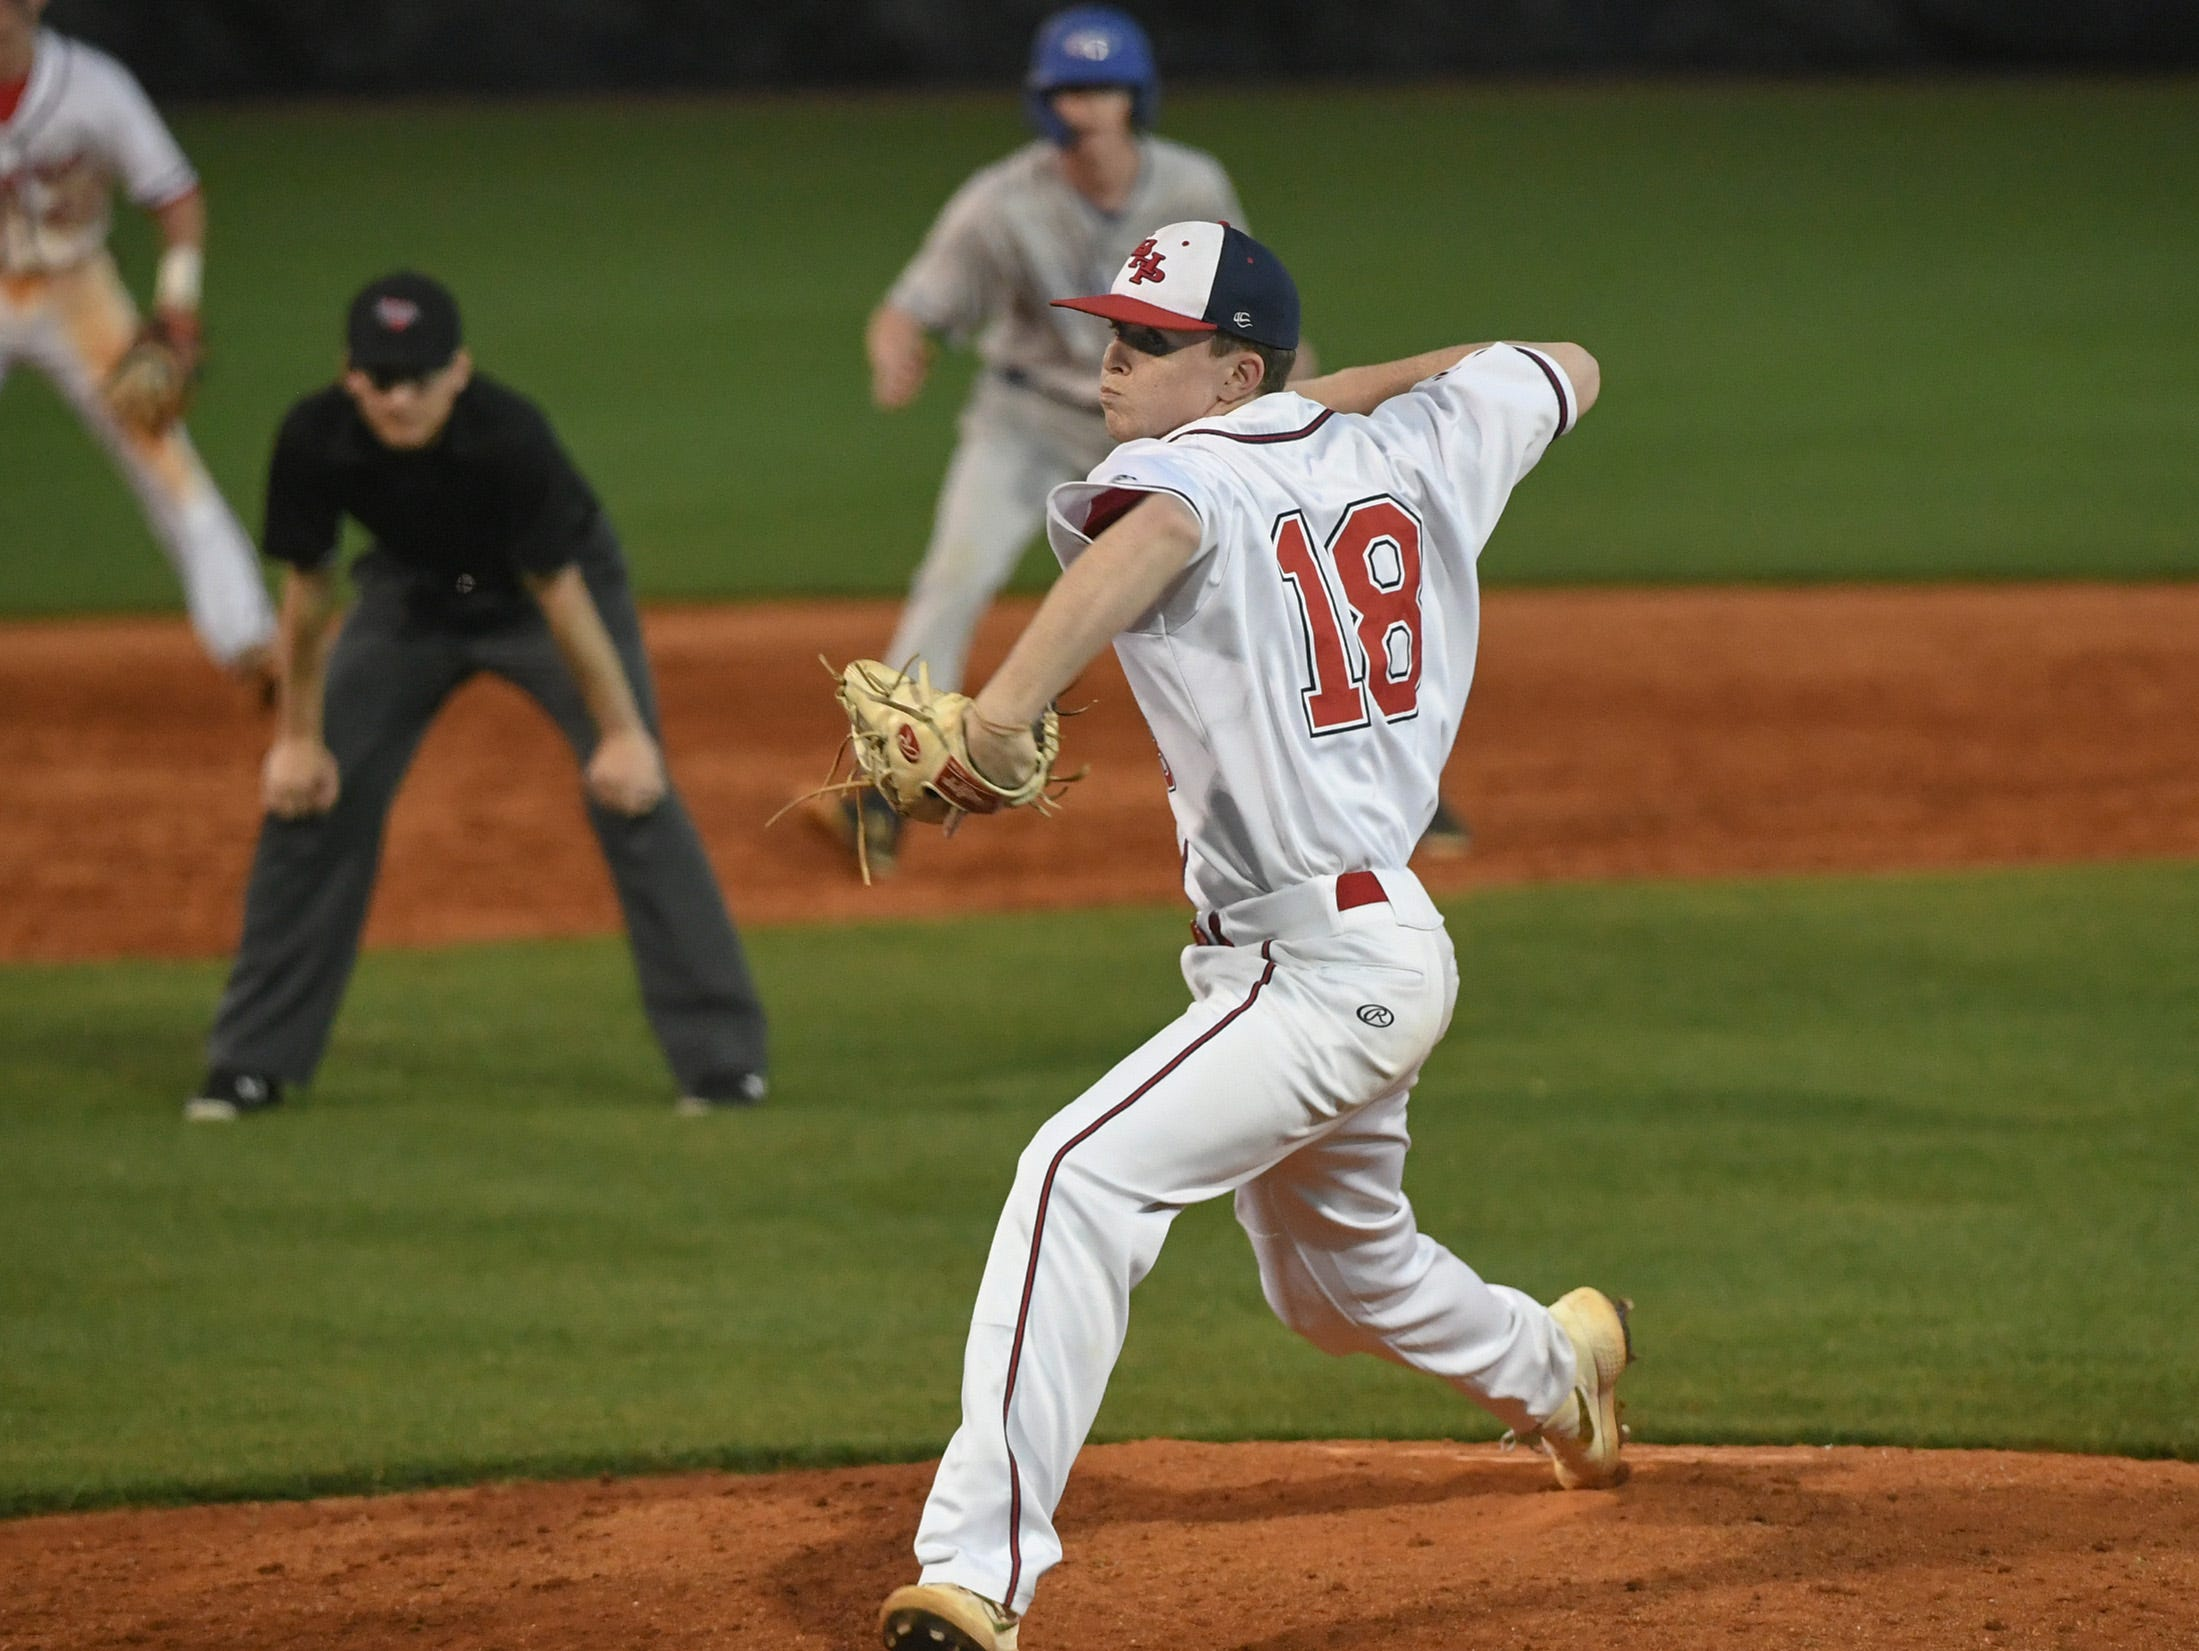 Belton-Honea Path senior Landon Gaddis (18) pitches to Wren during the top of the sixth inning at Belton-Honea Path High School in Honea Path Wednesday, April 10, 2019.